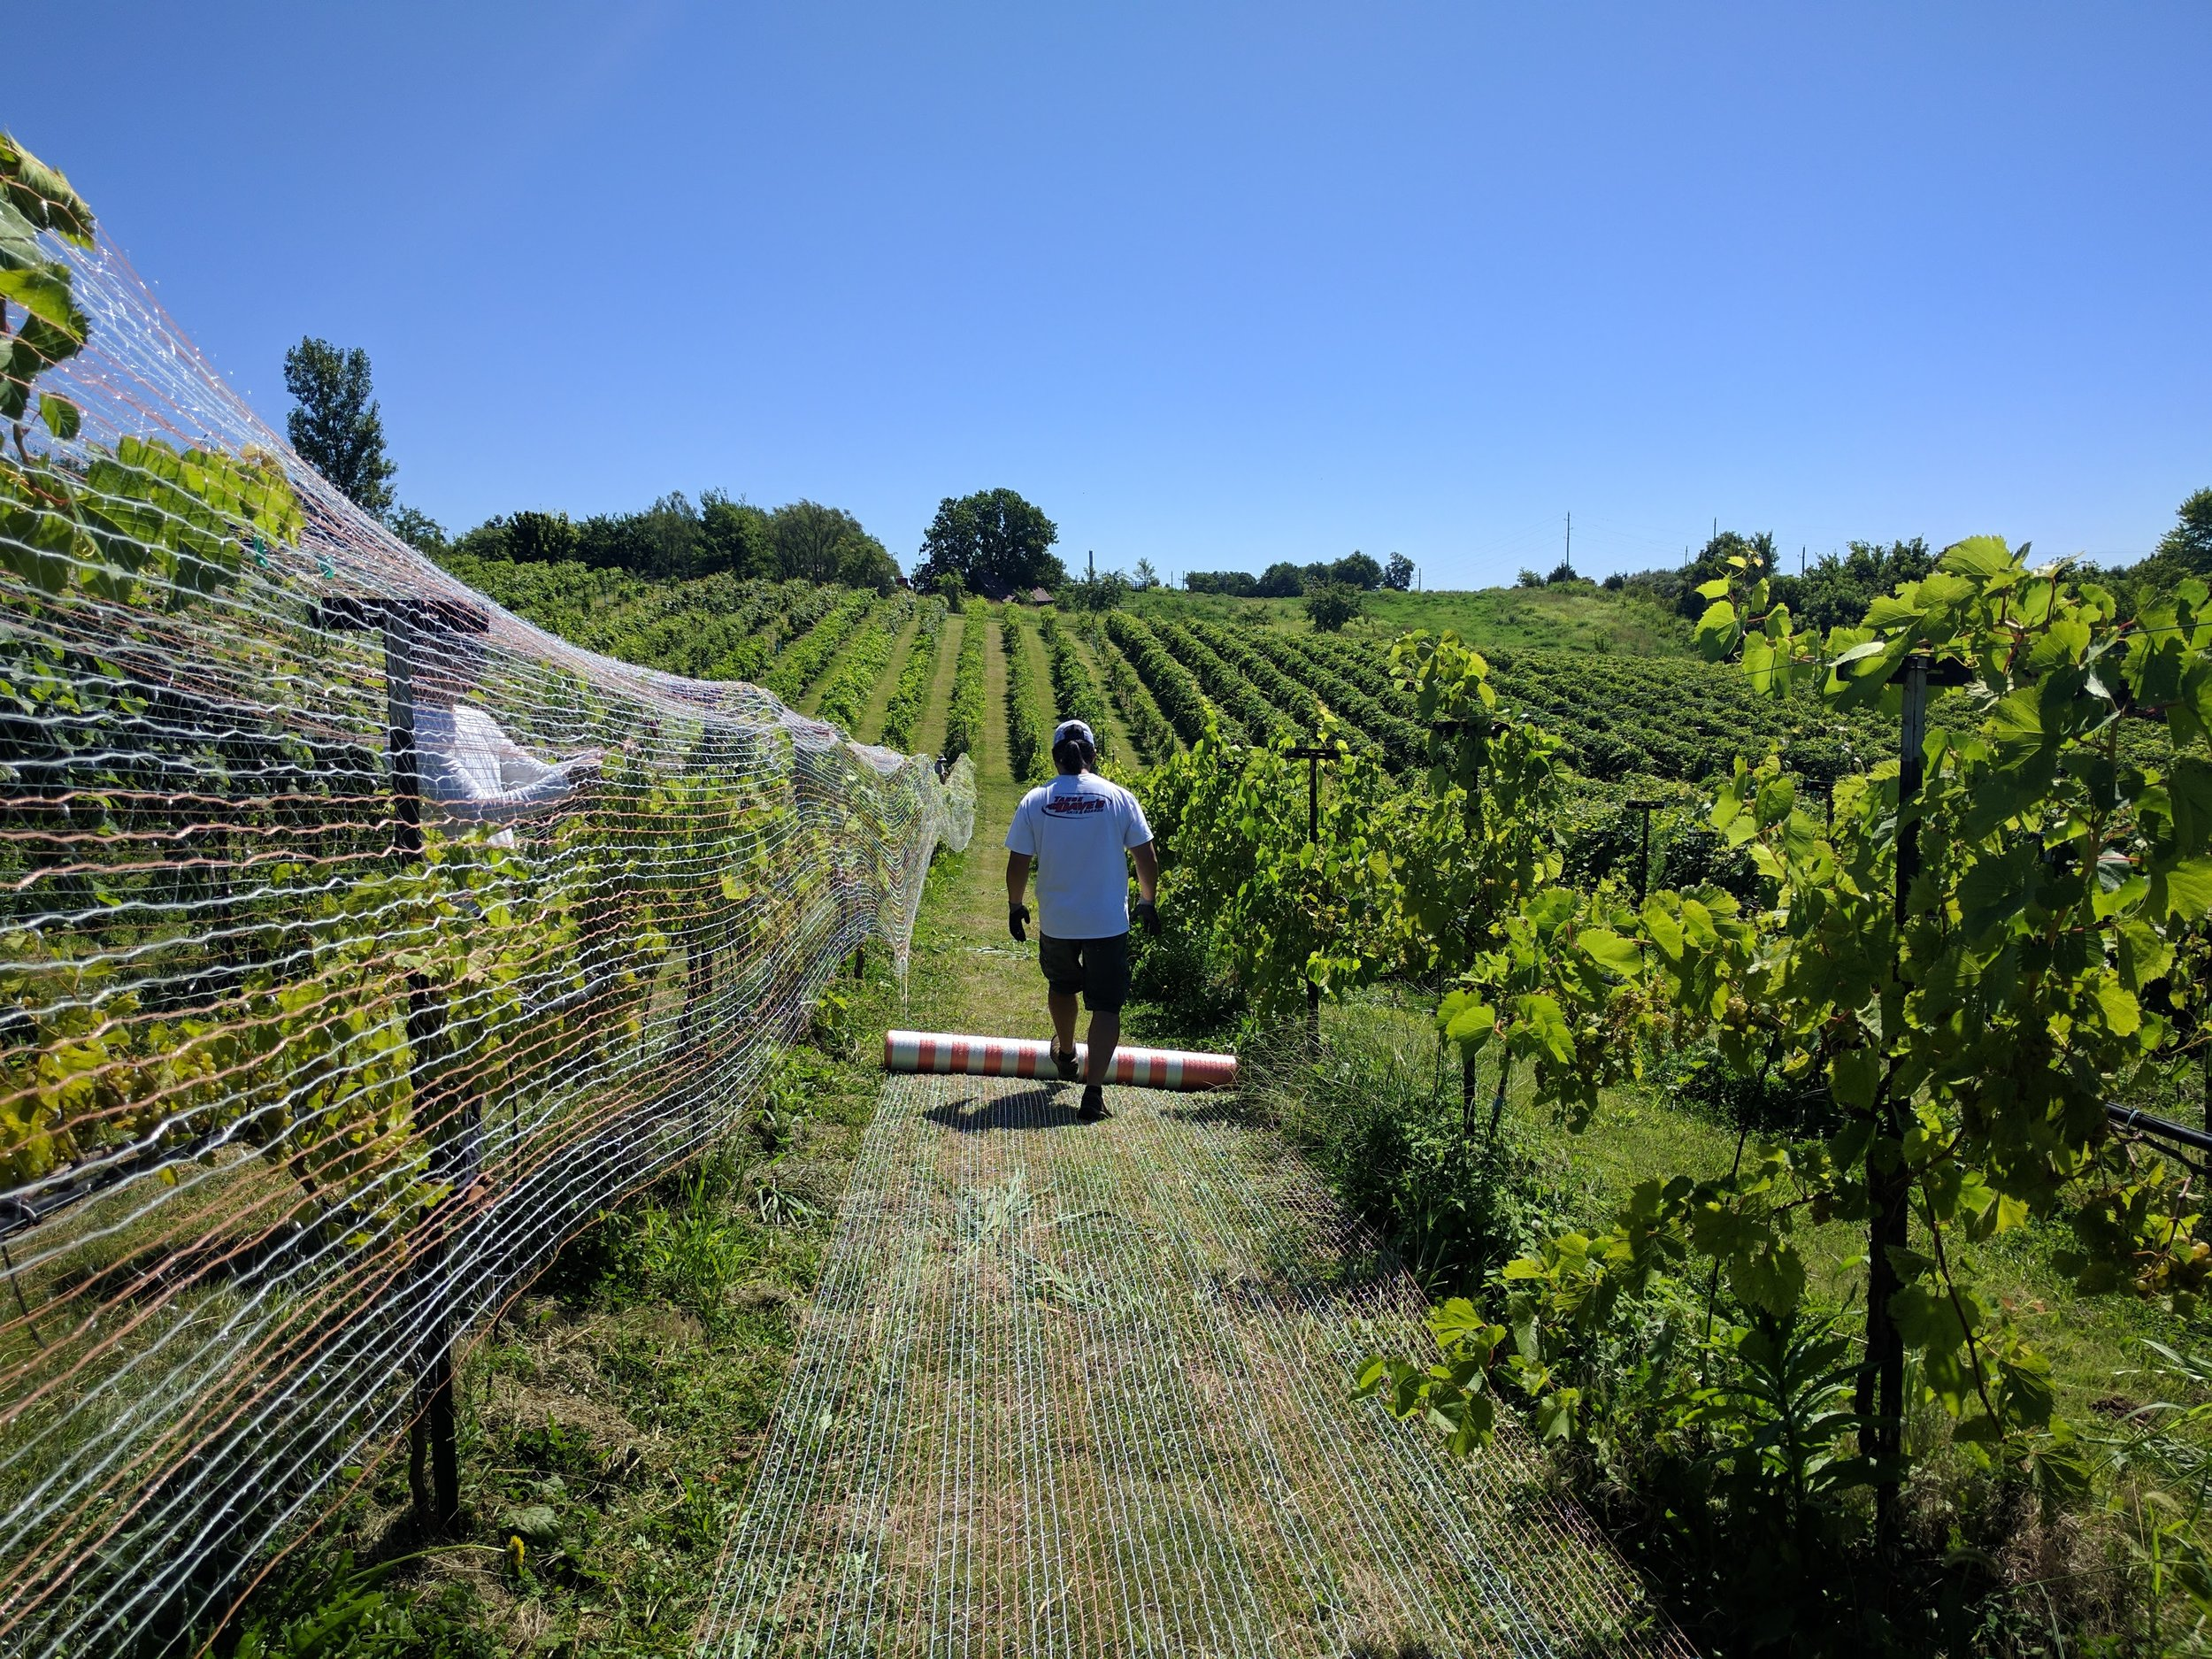 A person walking between two rows of vines while putting netting over the vine canopy